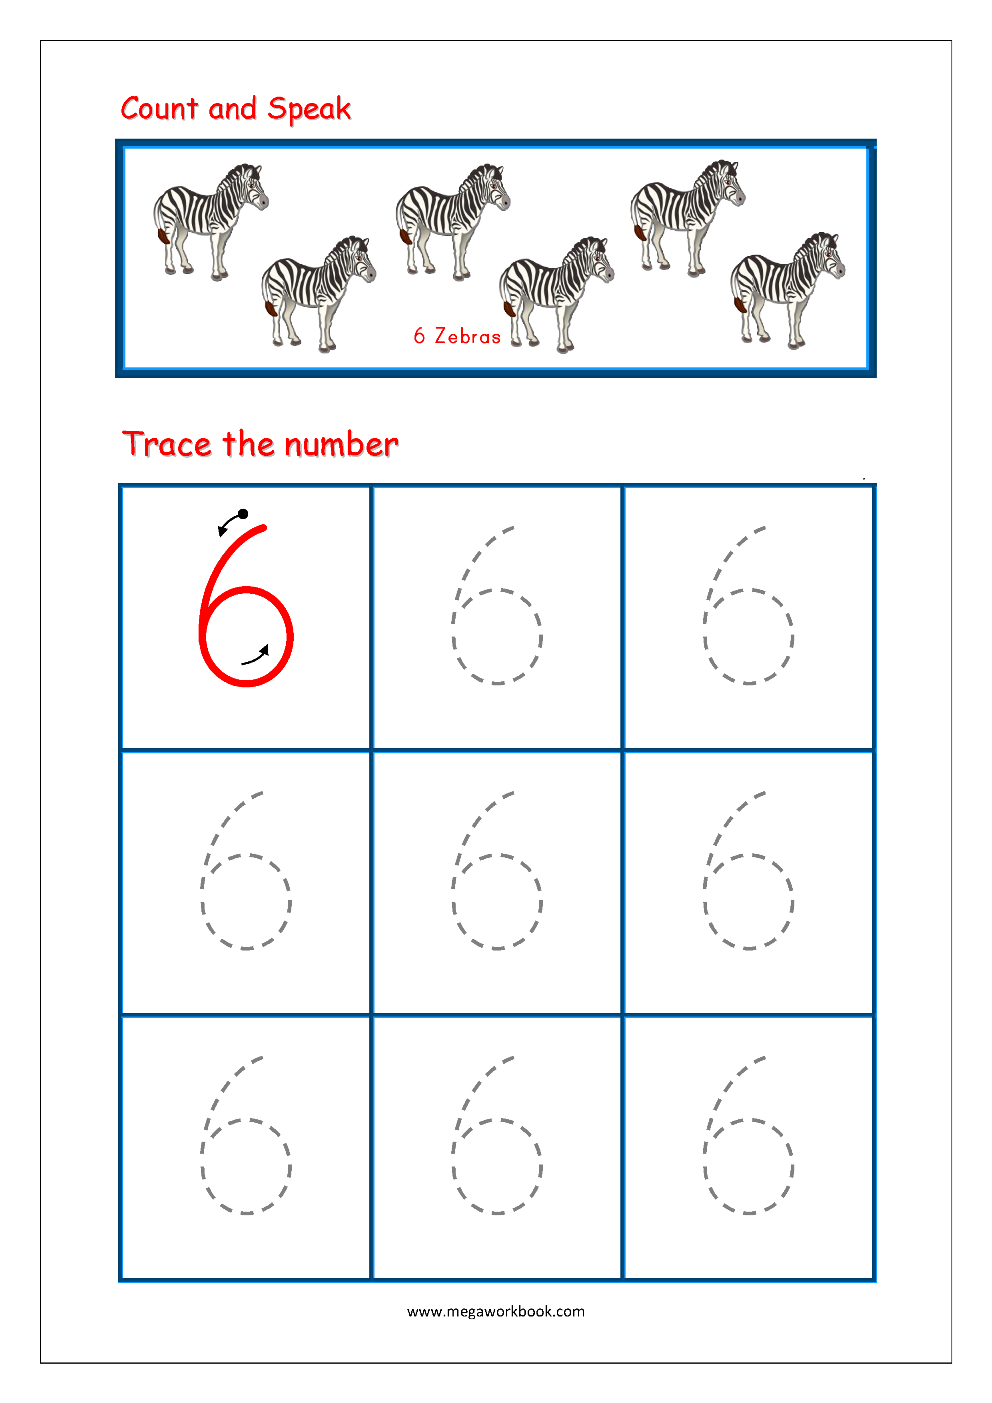 Free Printable Number Tracing And Writing 1 10 Worksheets Number Recognition And Tracing Worksheets Preschool Learning Numbers Preschool Preschool Tracing [ 1403 x 992 Pixel ]